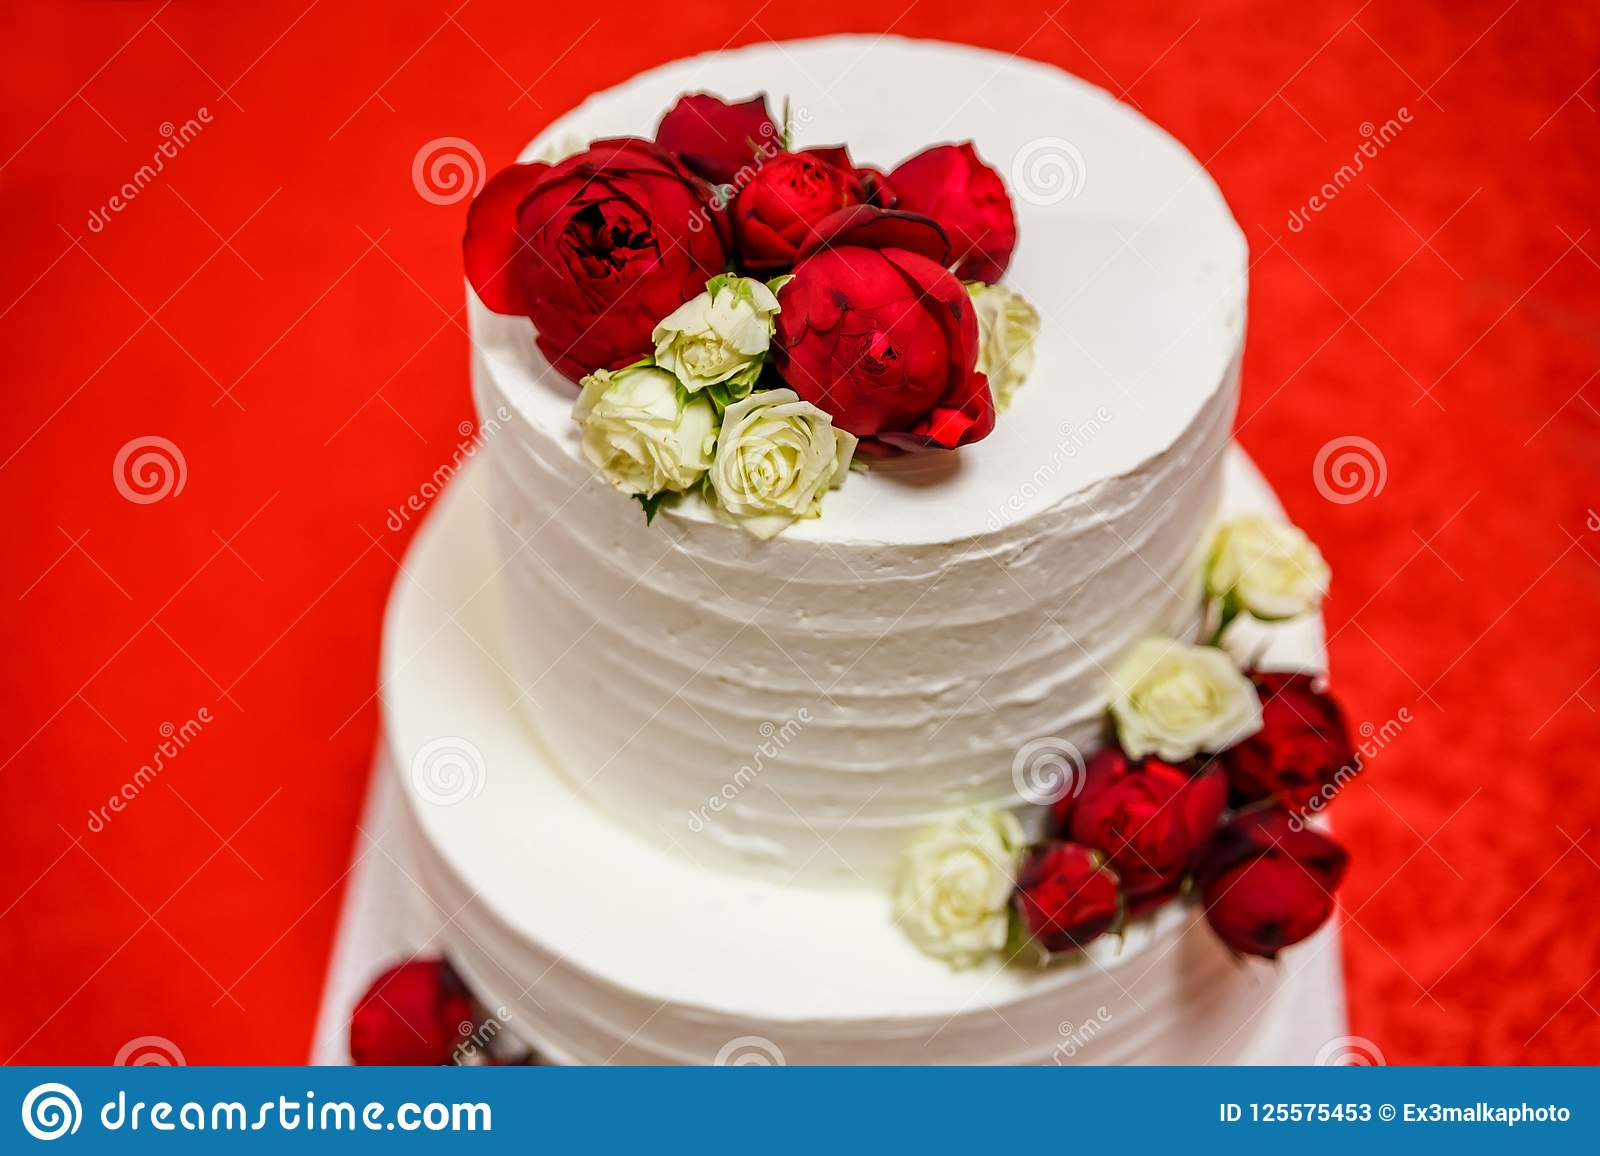 Beautiful White Wedding Cake With White And Red Roses Stock Image